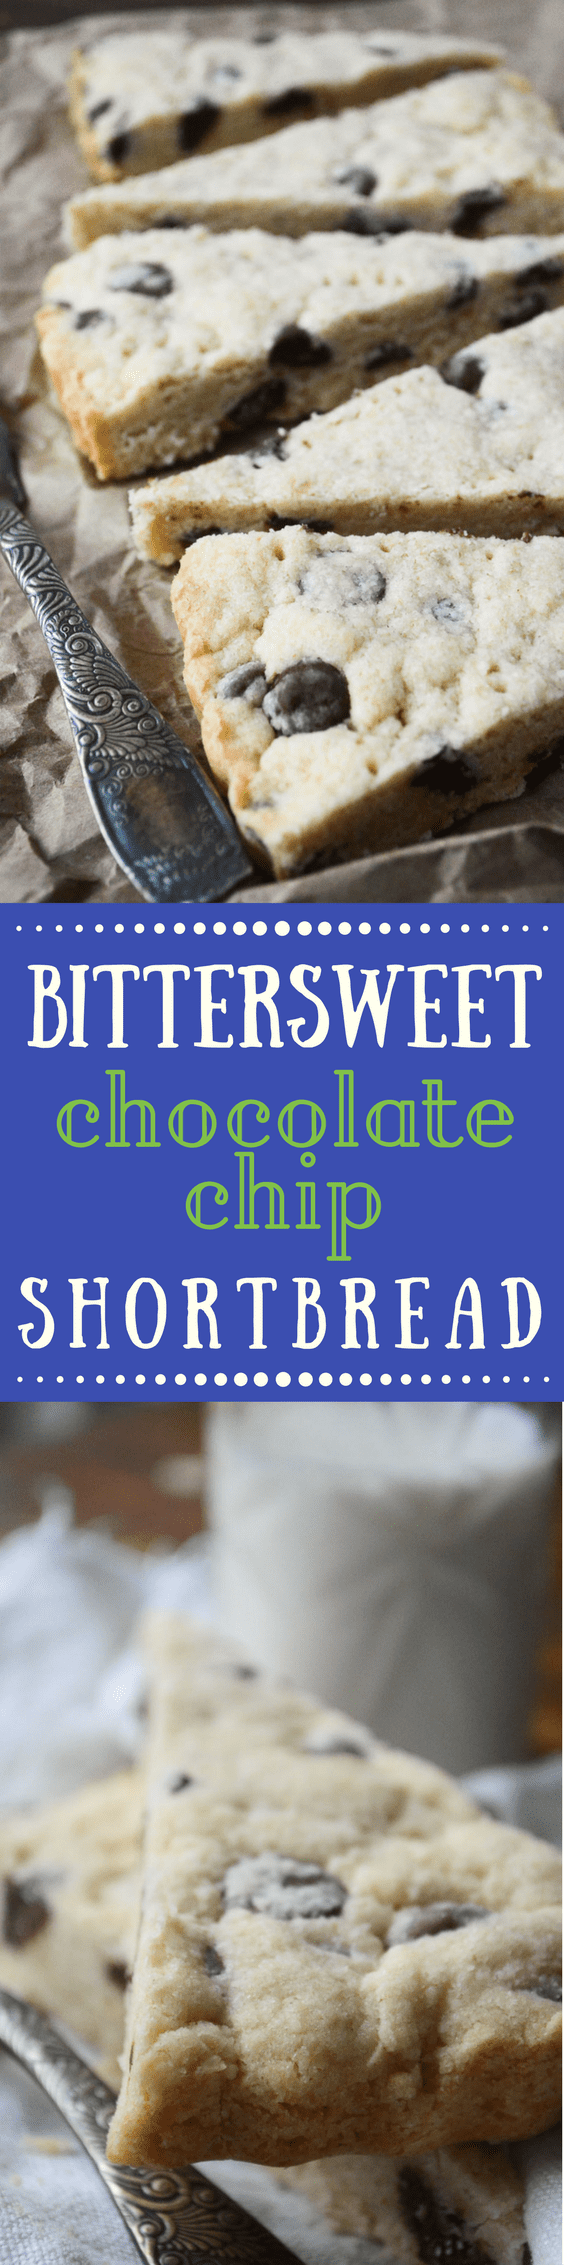 Bittersweet Chocolate Chip Shortbread ~ this classic buttery shortbread studded with chunky bittersweet chocolate chips melts in your mouth and gives the whole notion of chocolate chip cookies a whole new meaning! #cookies #shortbread #homemade #recipe #best #dessert #bittersweetchocolate #chocolatechipcookies